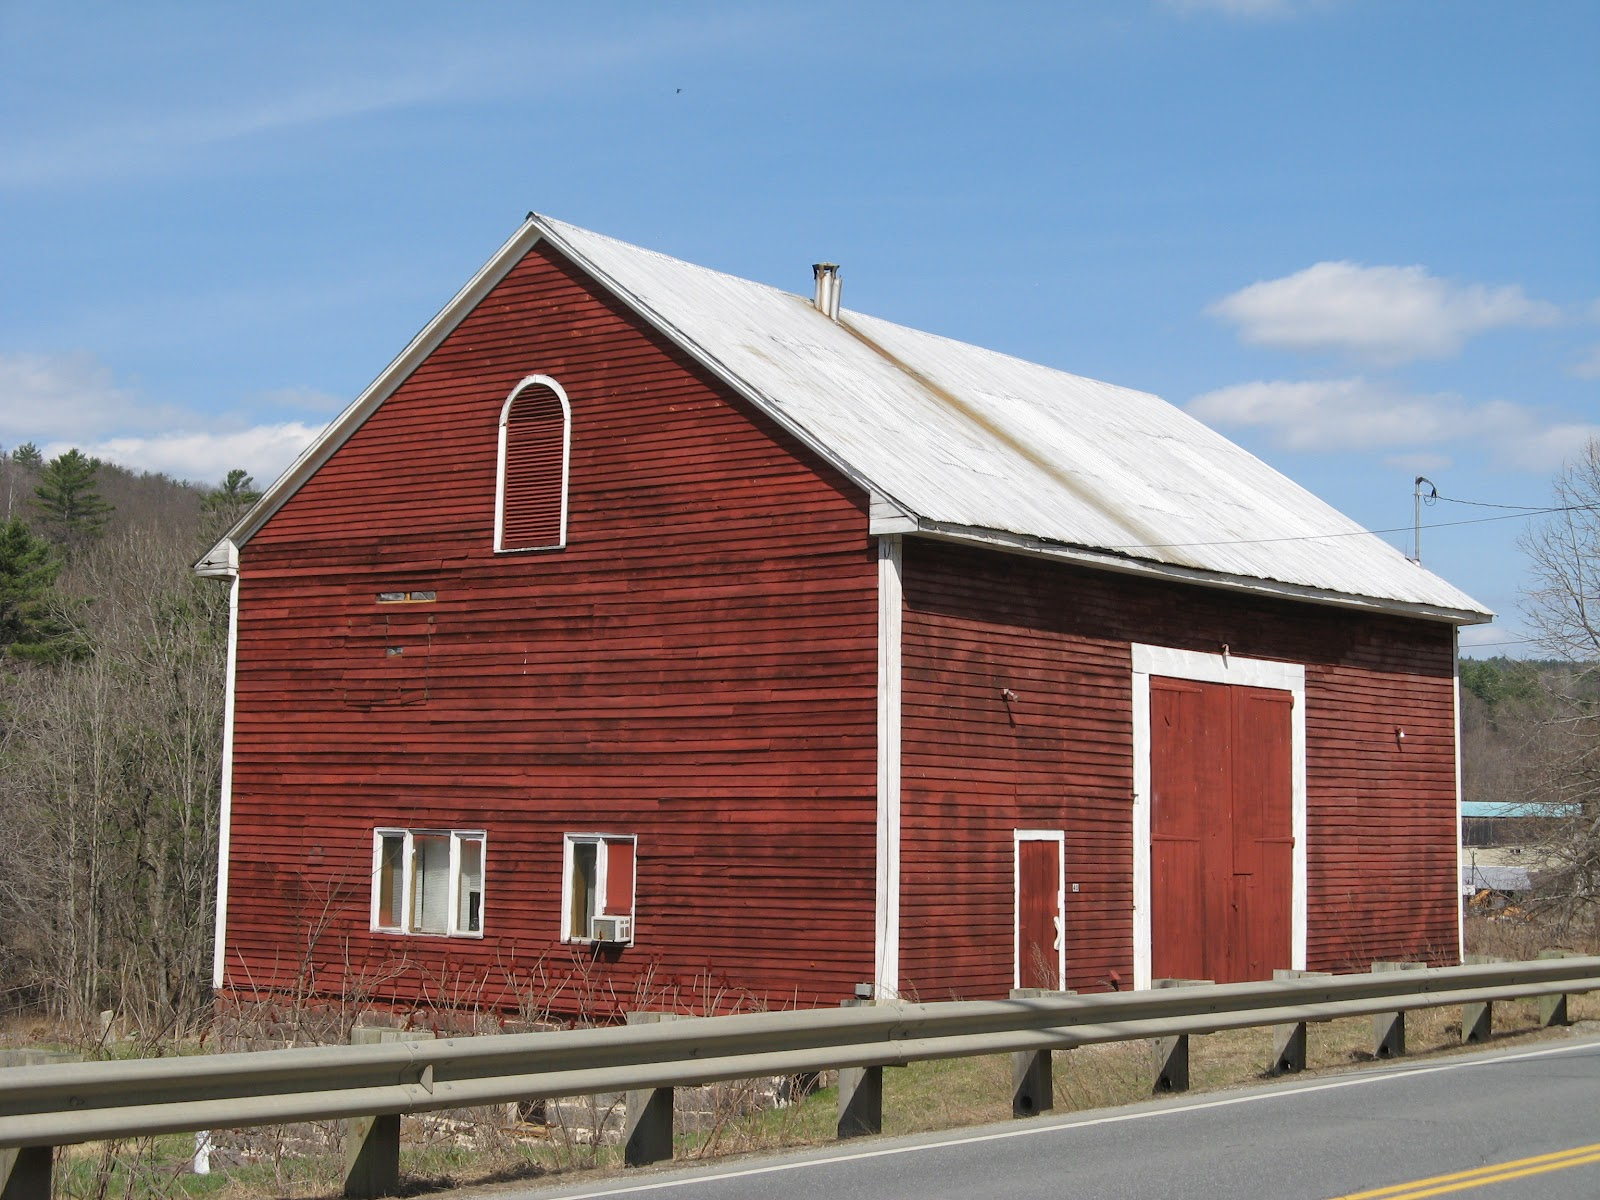 This Barn Has Been Made Into A House There Is A Number On The Door